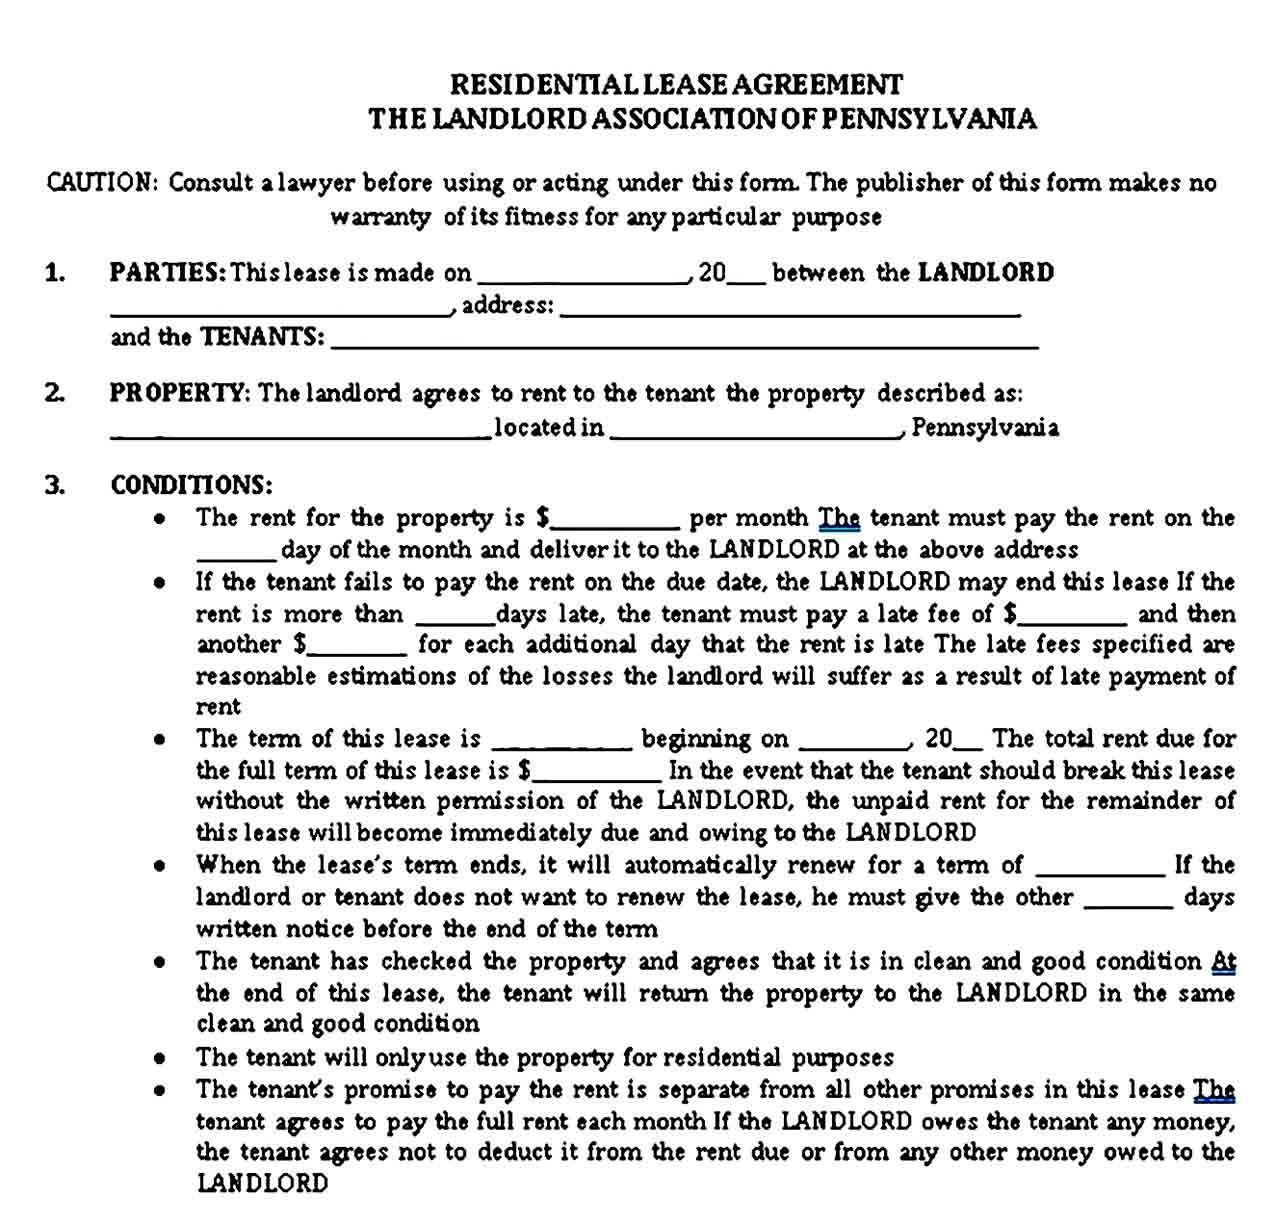 000 Surprising Renter Lease Agreement Template Image  Apartment Form Early Termination Of By Tenant South Africa FreeFull